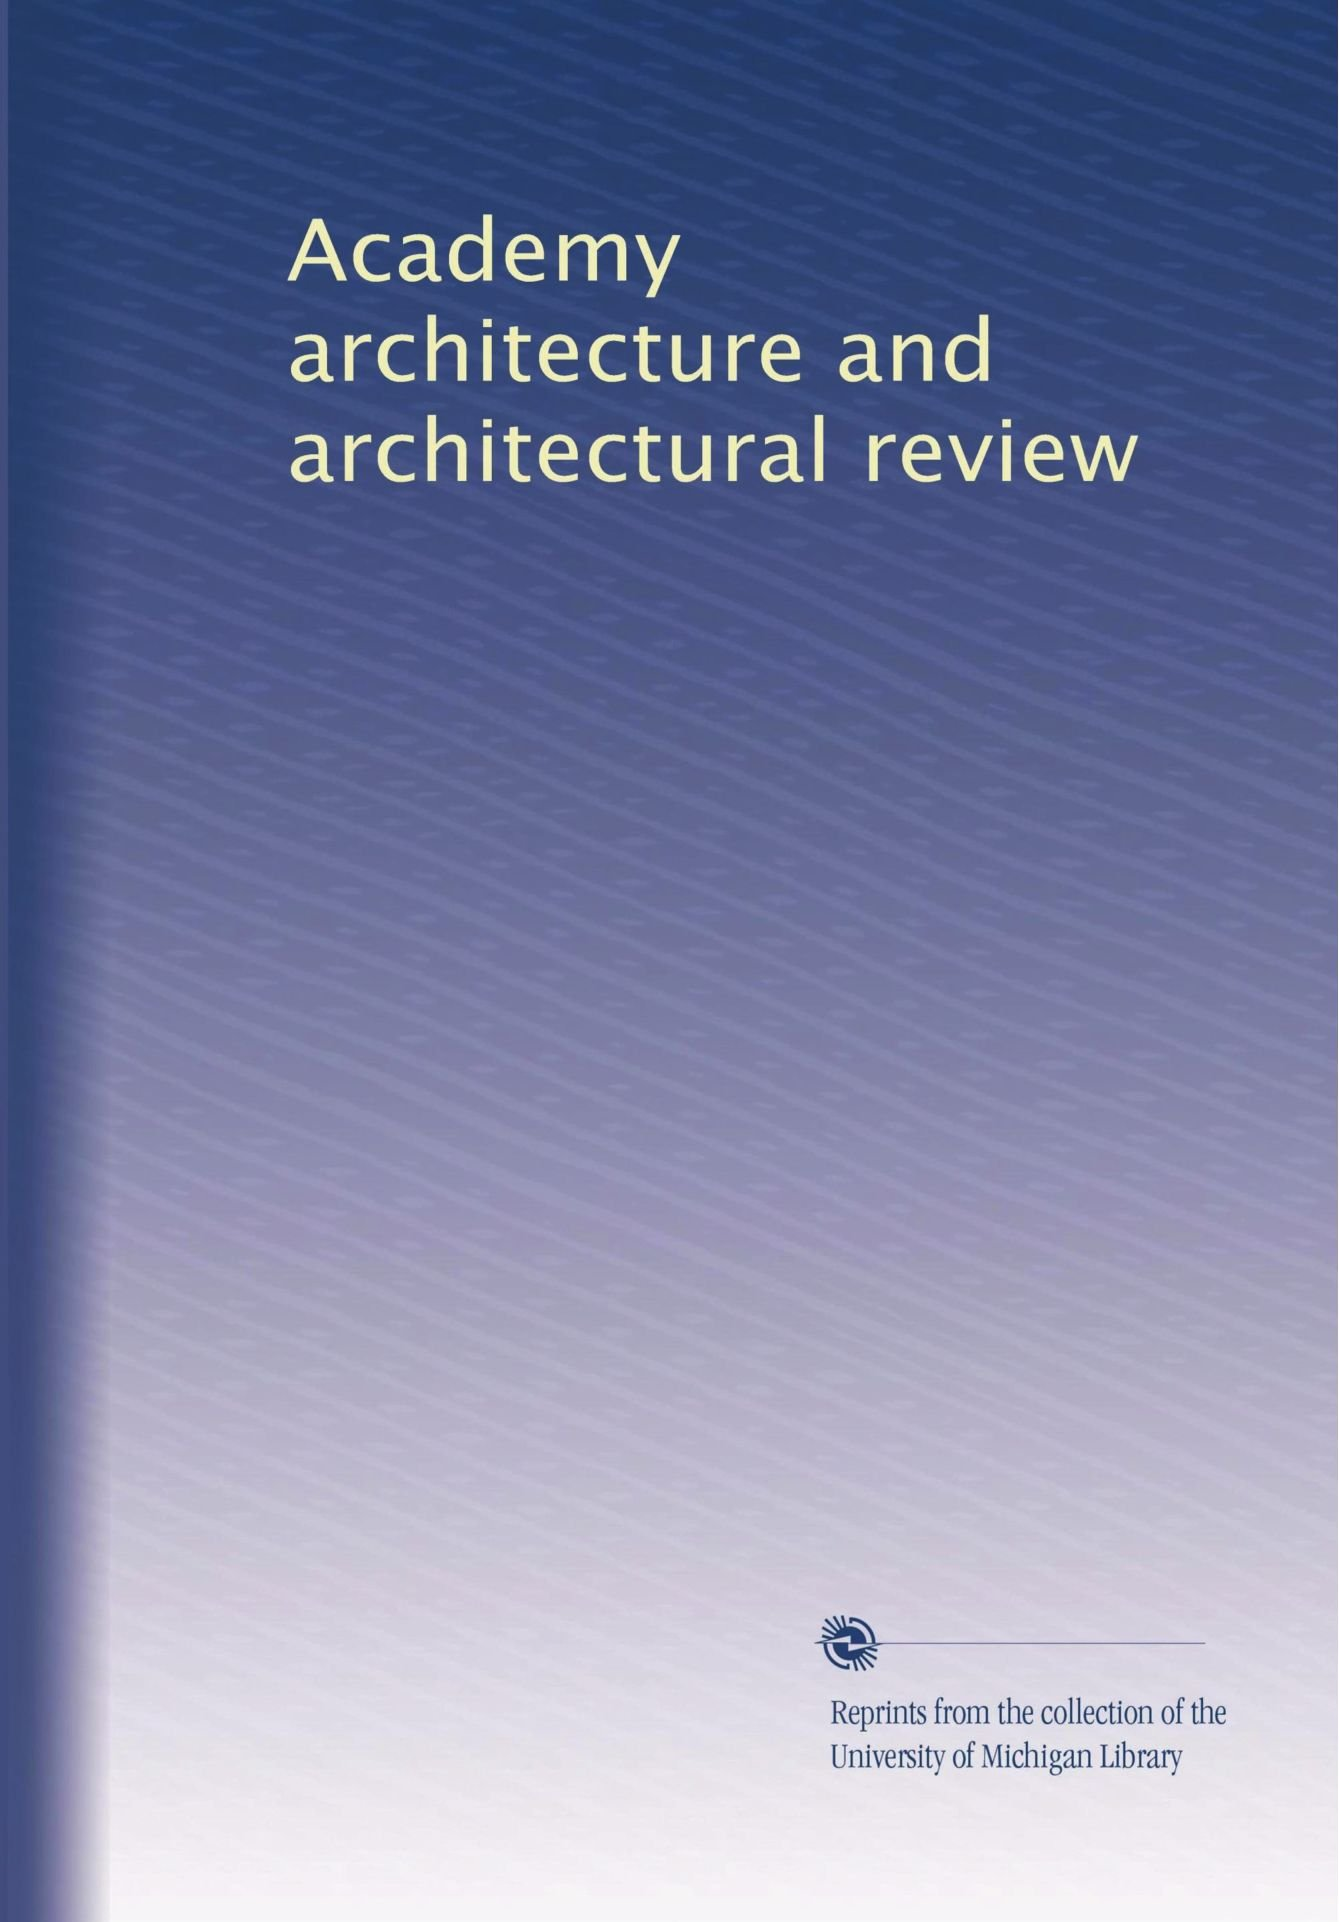 Academy architecture and architectural review PDF